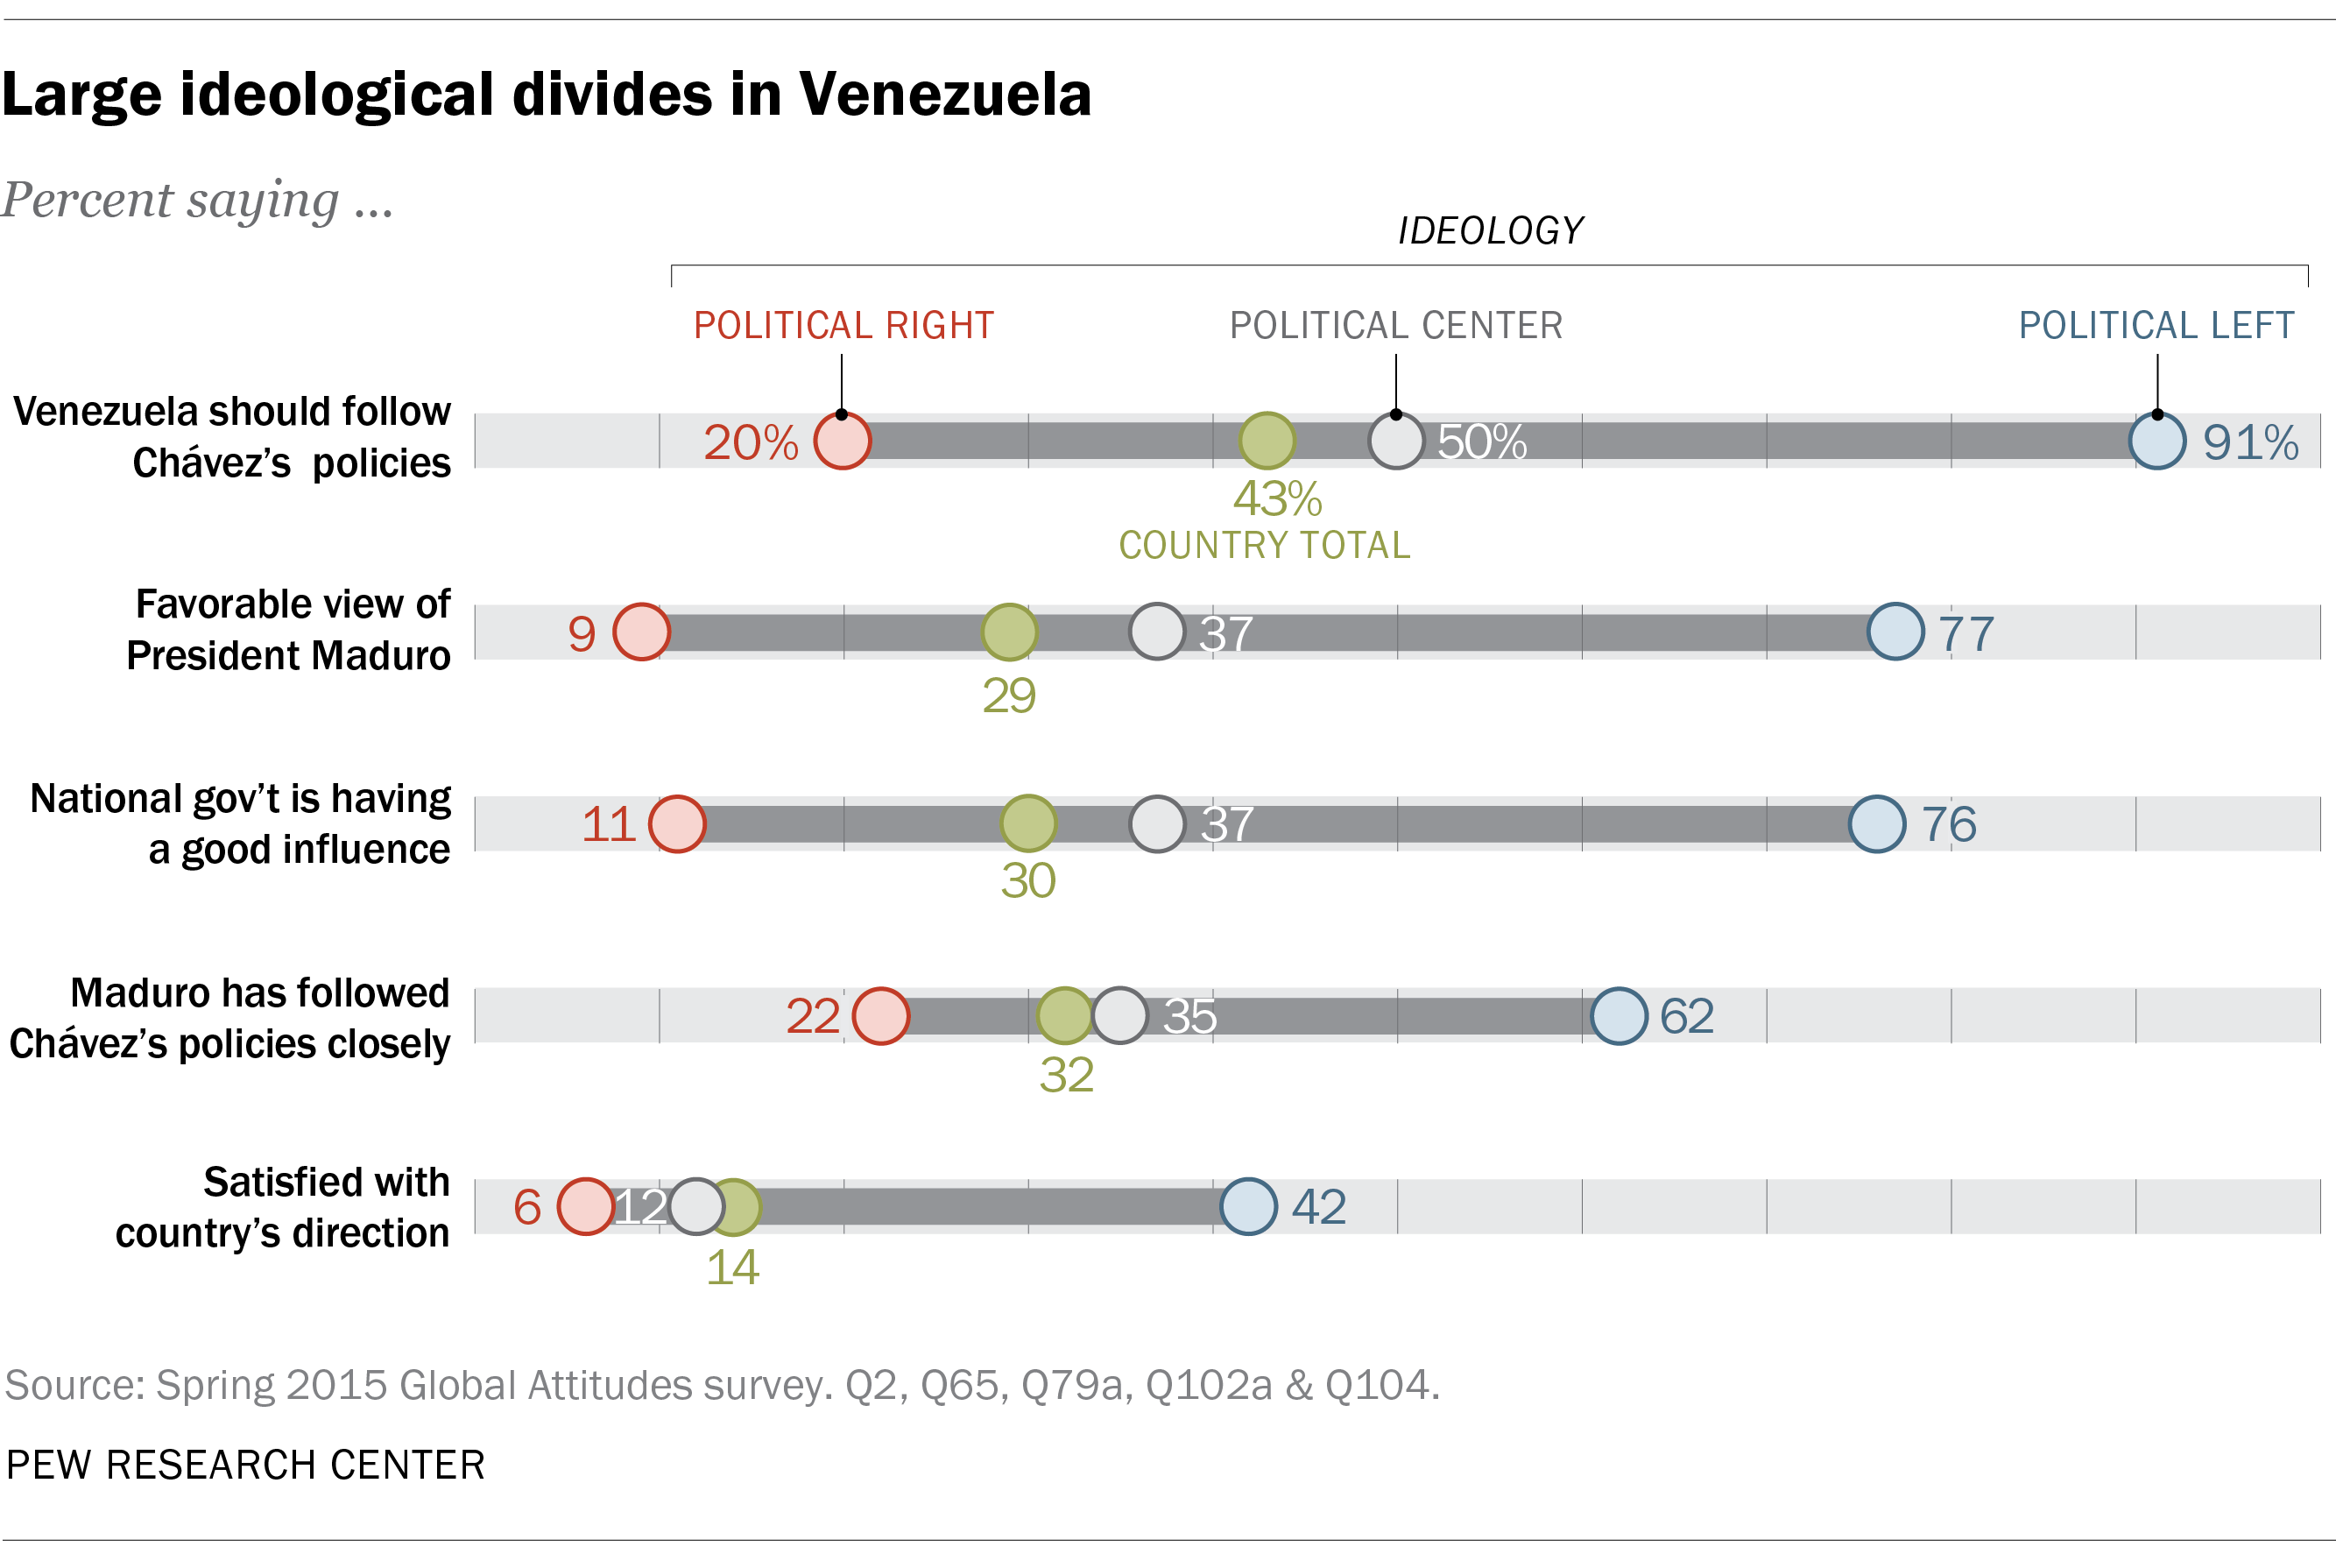 Large ideological divides in Venezuela